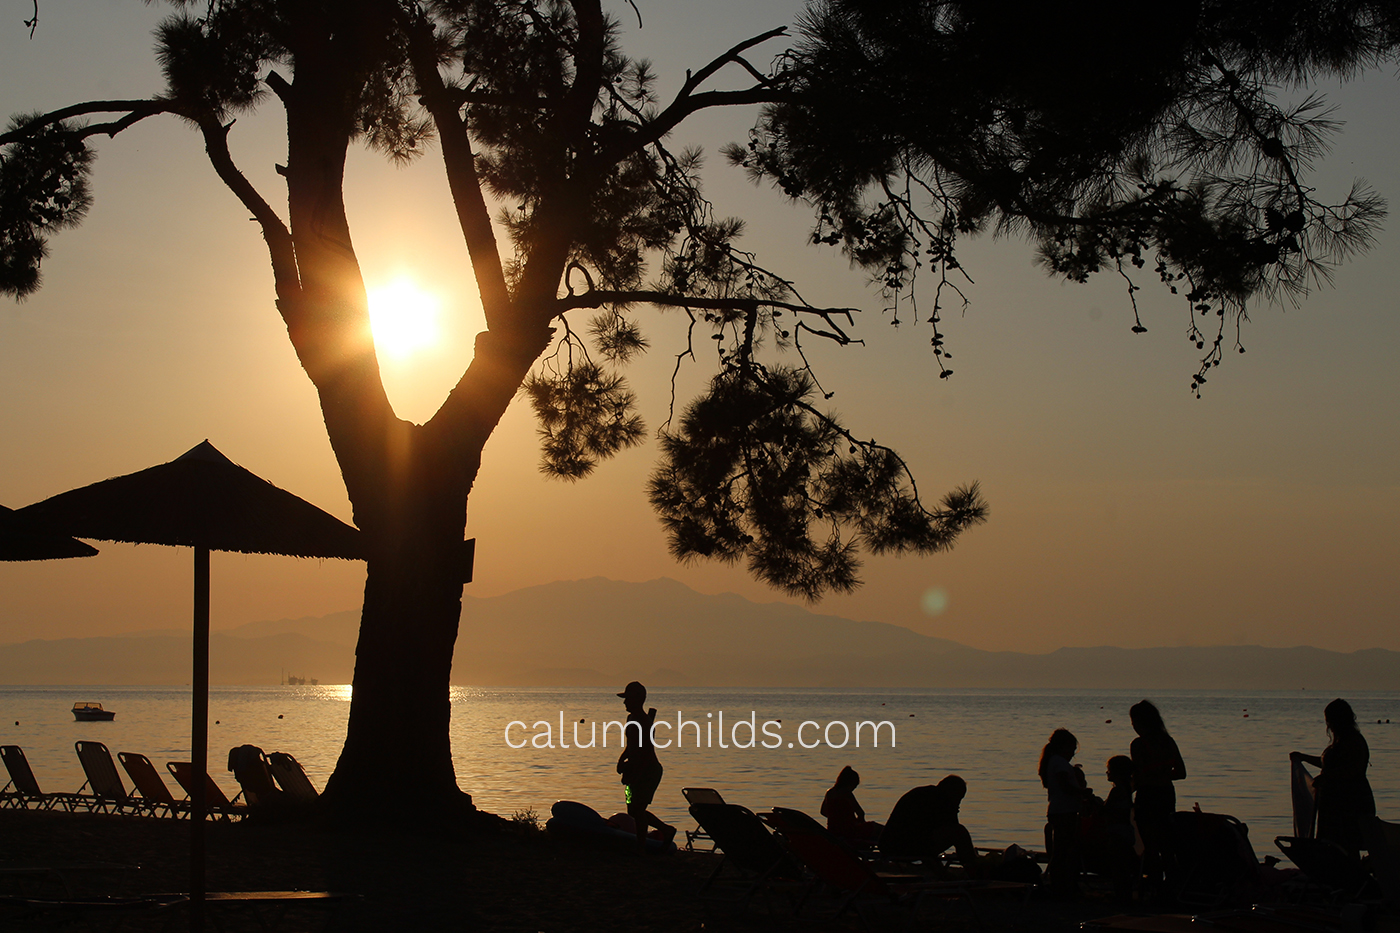 The sun shines through a pine tree, with silhouettes of people and umbrellas surrounding it.